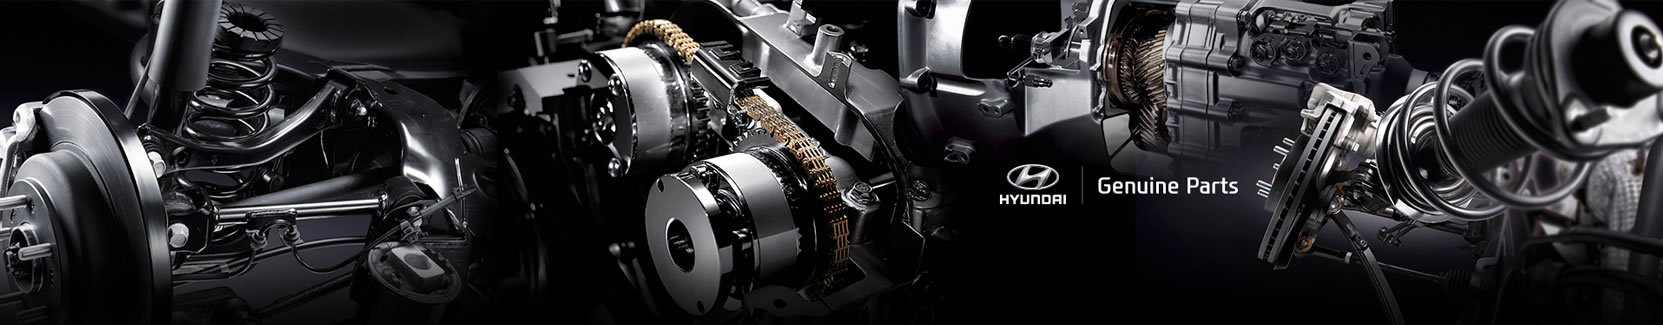 Hyundai genuine parts are essential for keeping your Hyundai in perfect condition.